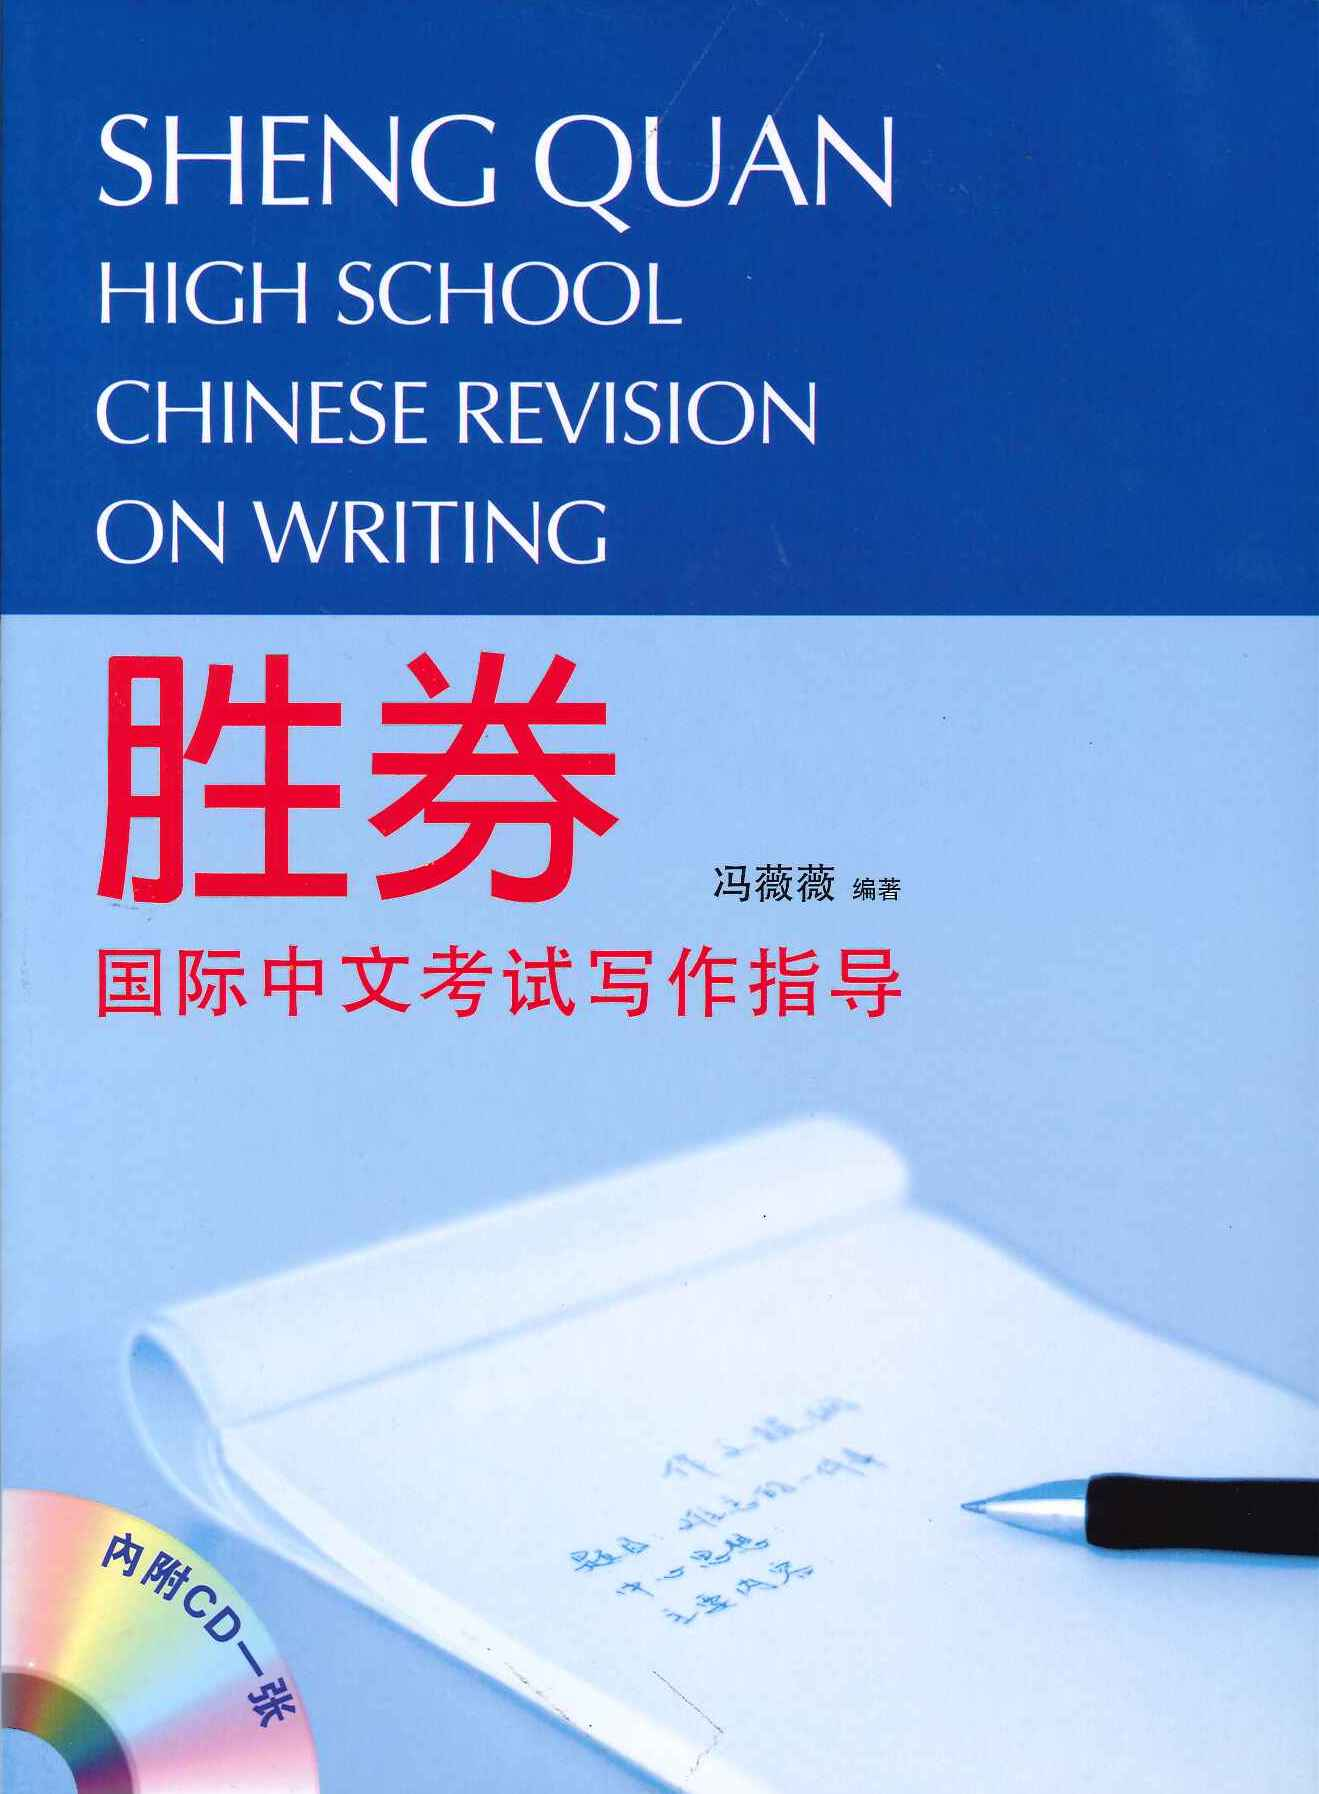 勝券——國際中文考試寫作指導(High School Chinese Revision on Writing)